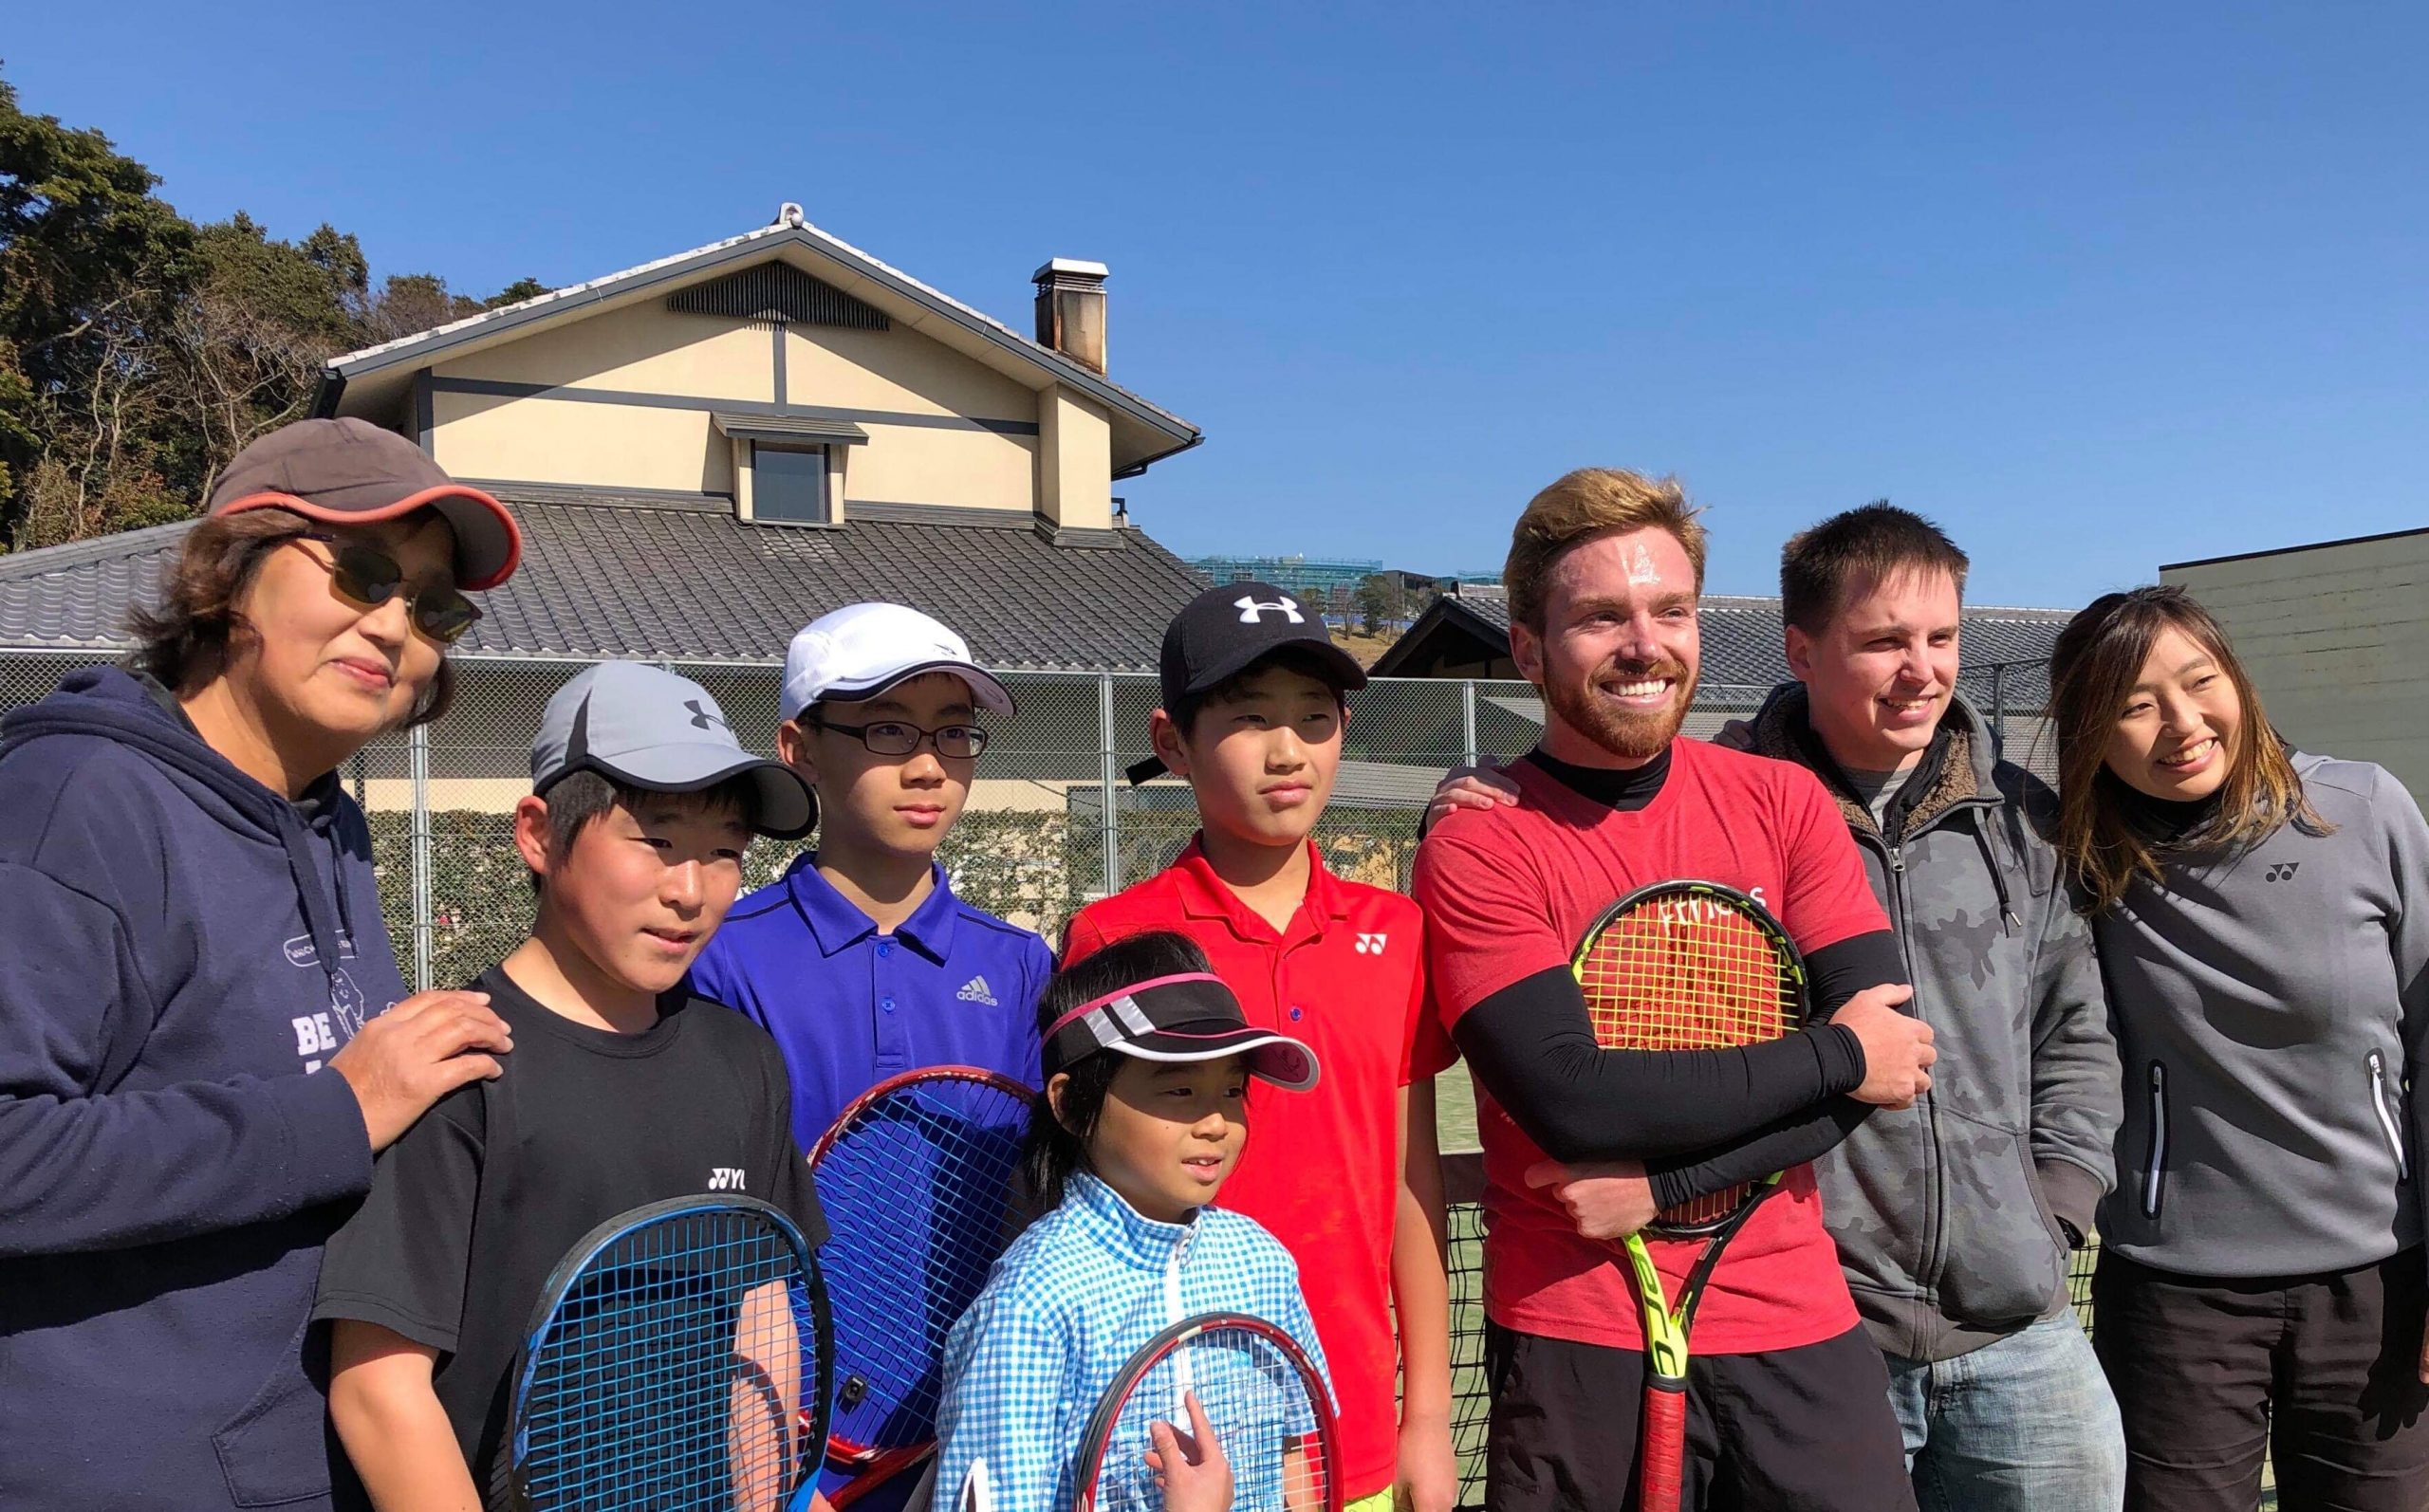 tennis group taking a group photo